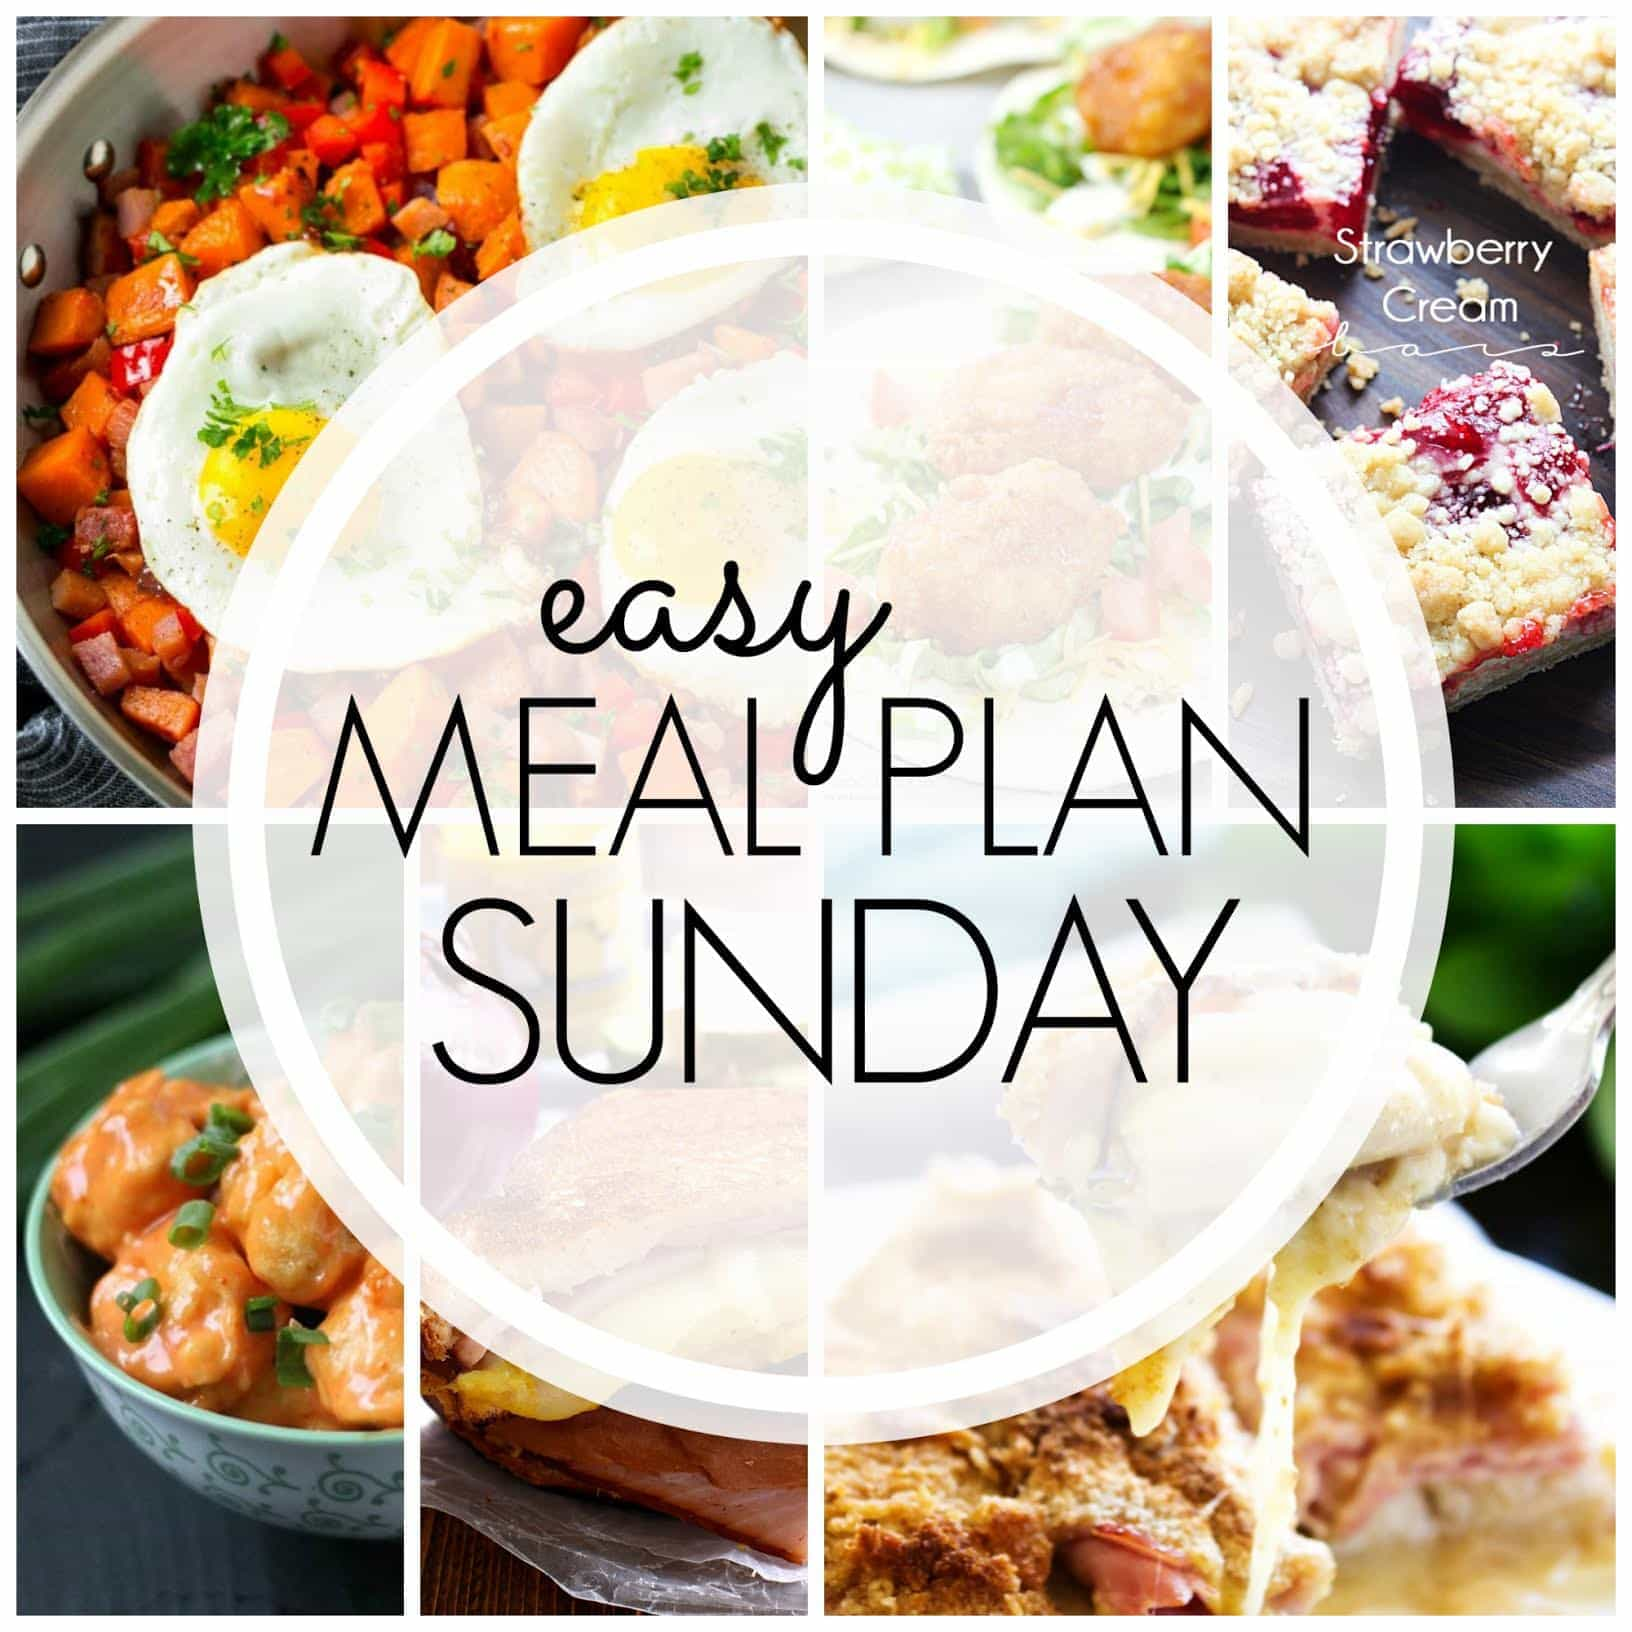 The BEST weekly meal plan....filled with easy, family friendly recipes from your favorite bloggers!